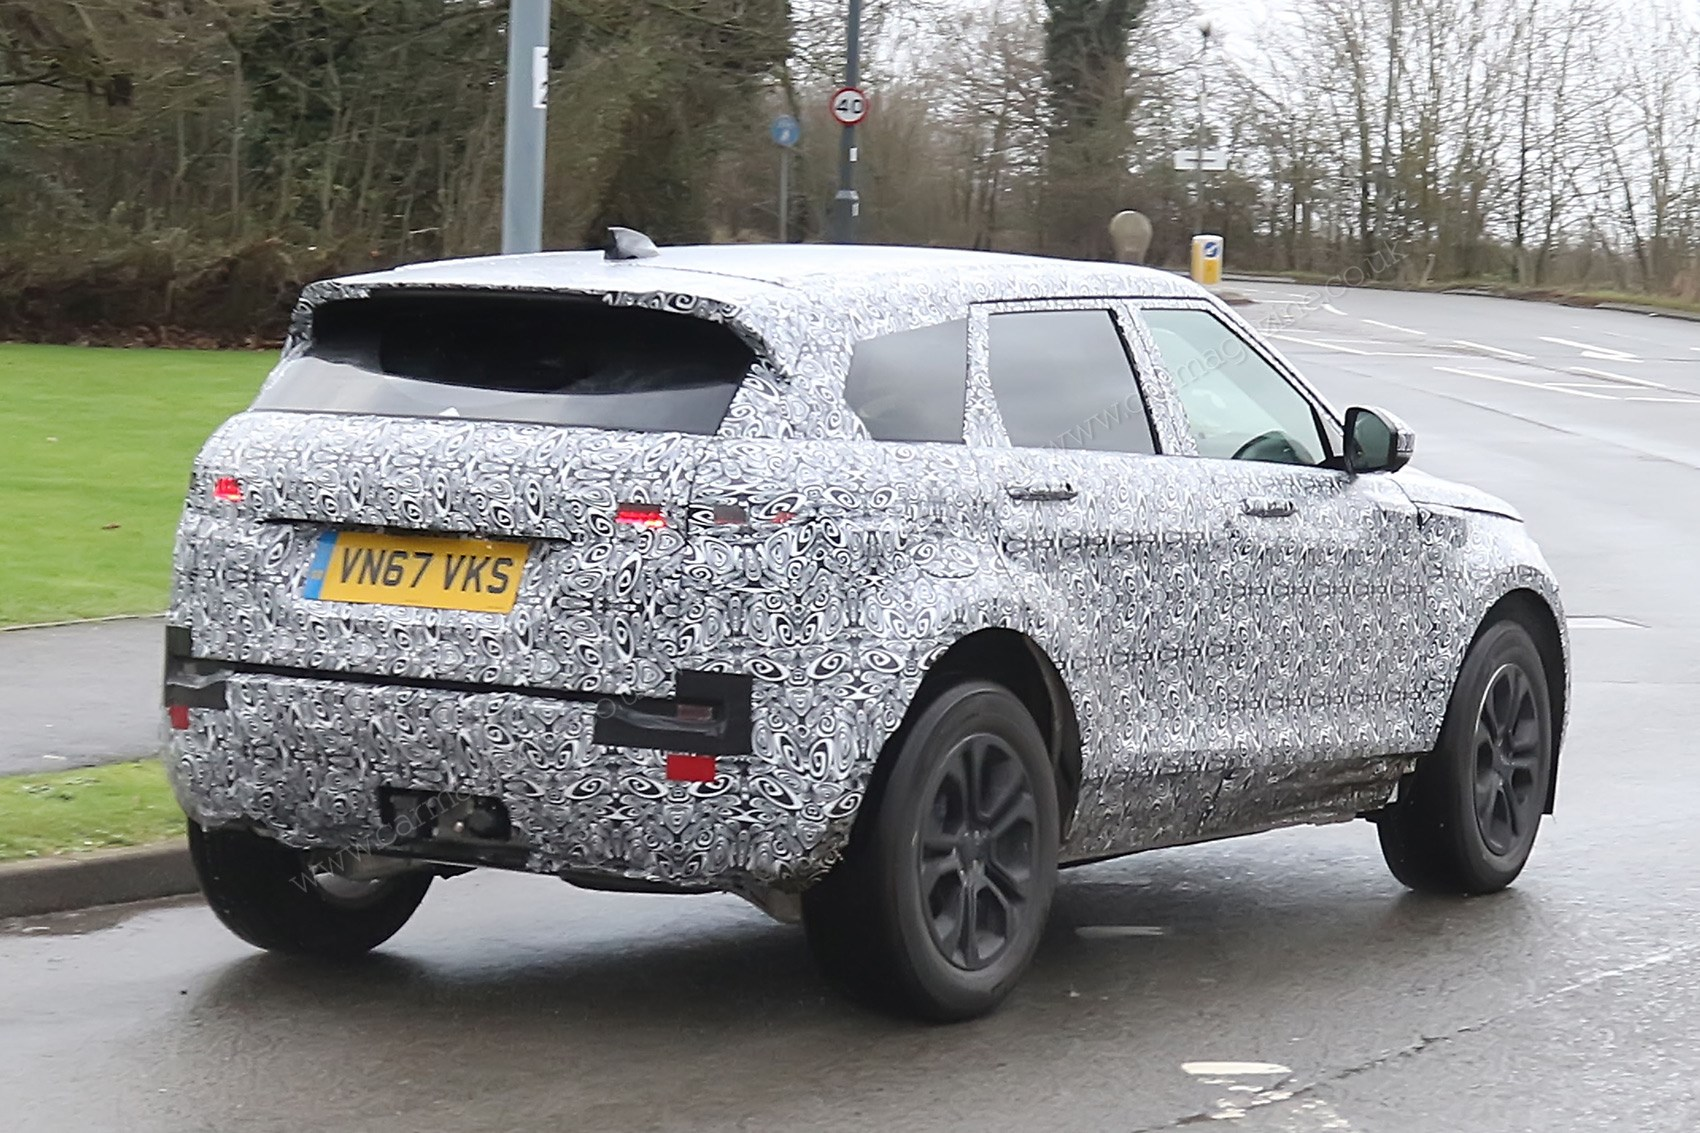 New 2019 Range Rover Evoque spy photos specs prices